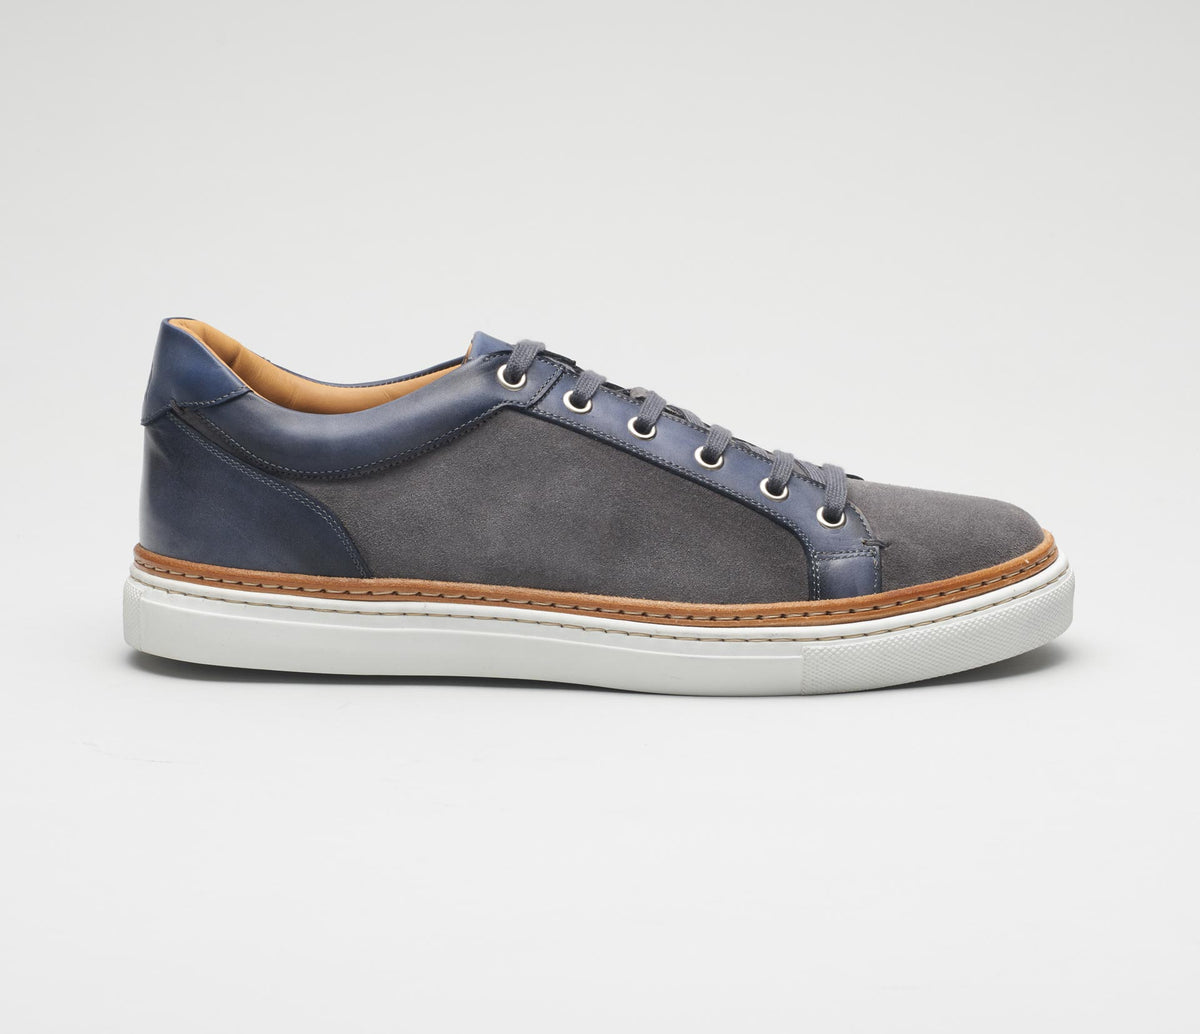 The Binetto Incenso Men's Dress Sneaker